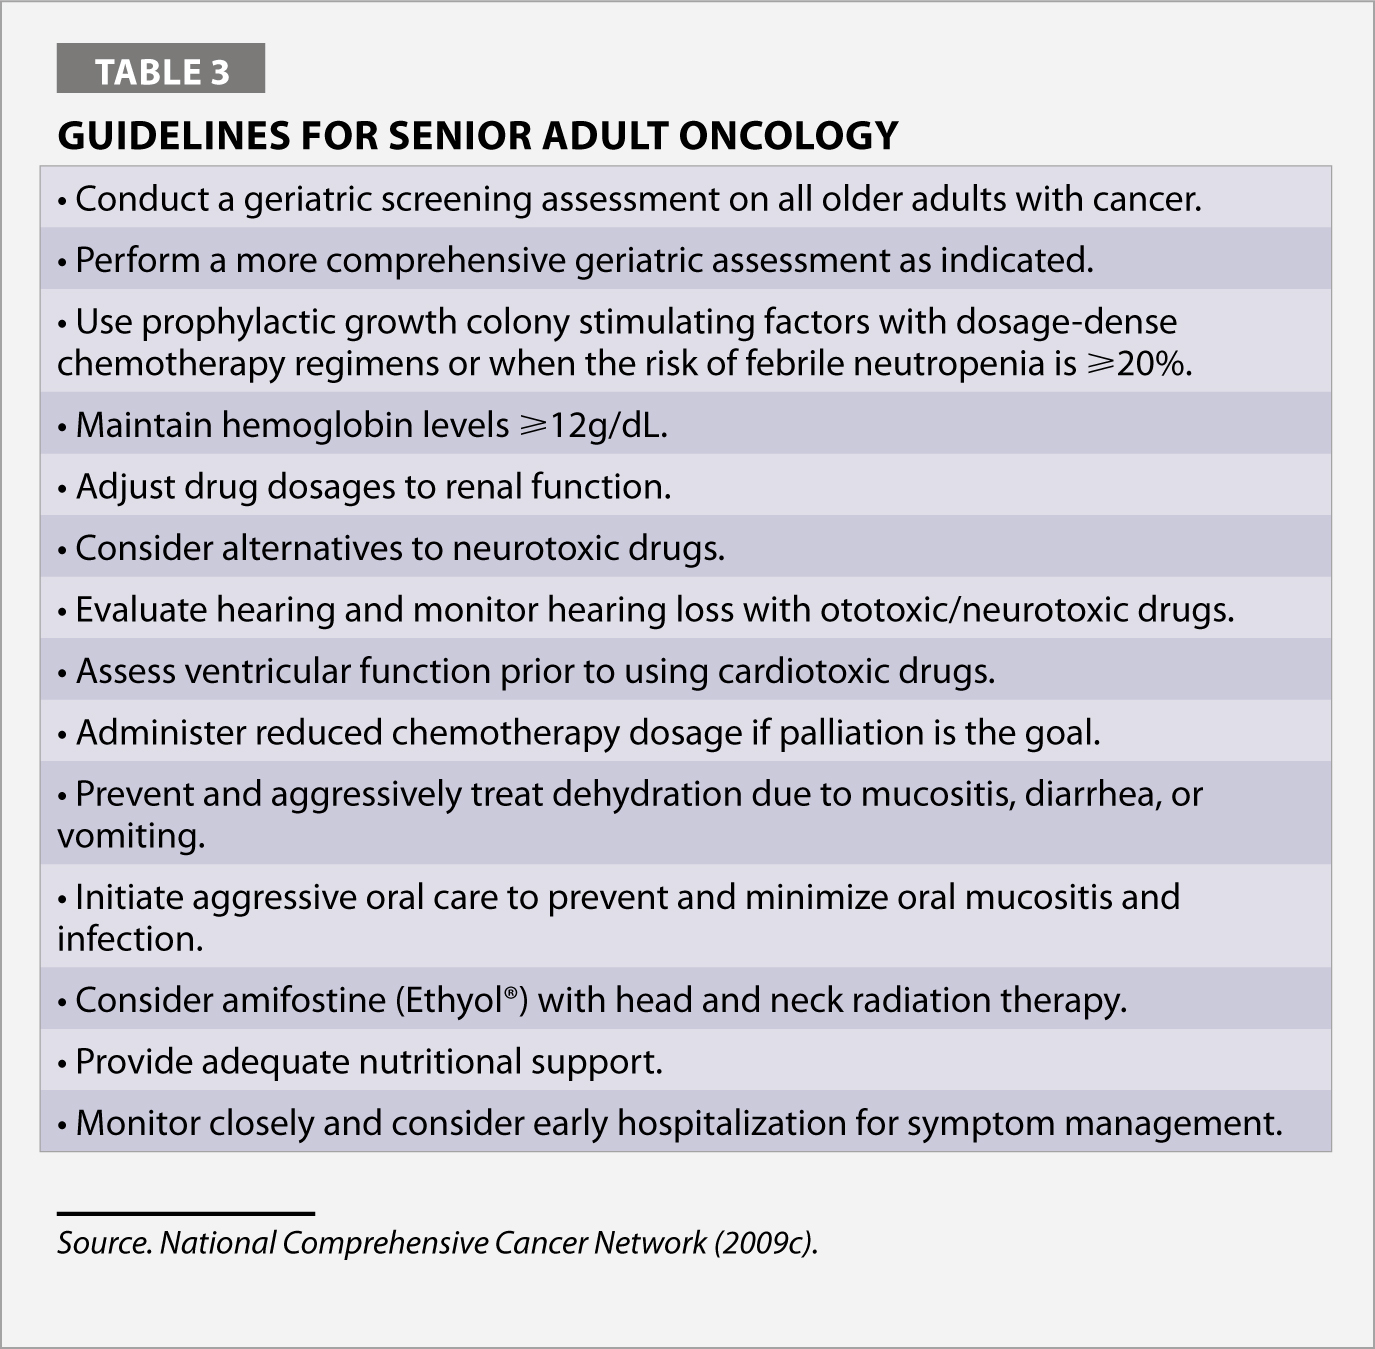 Guidelines for Senior Adult Oncology